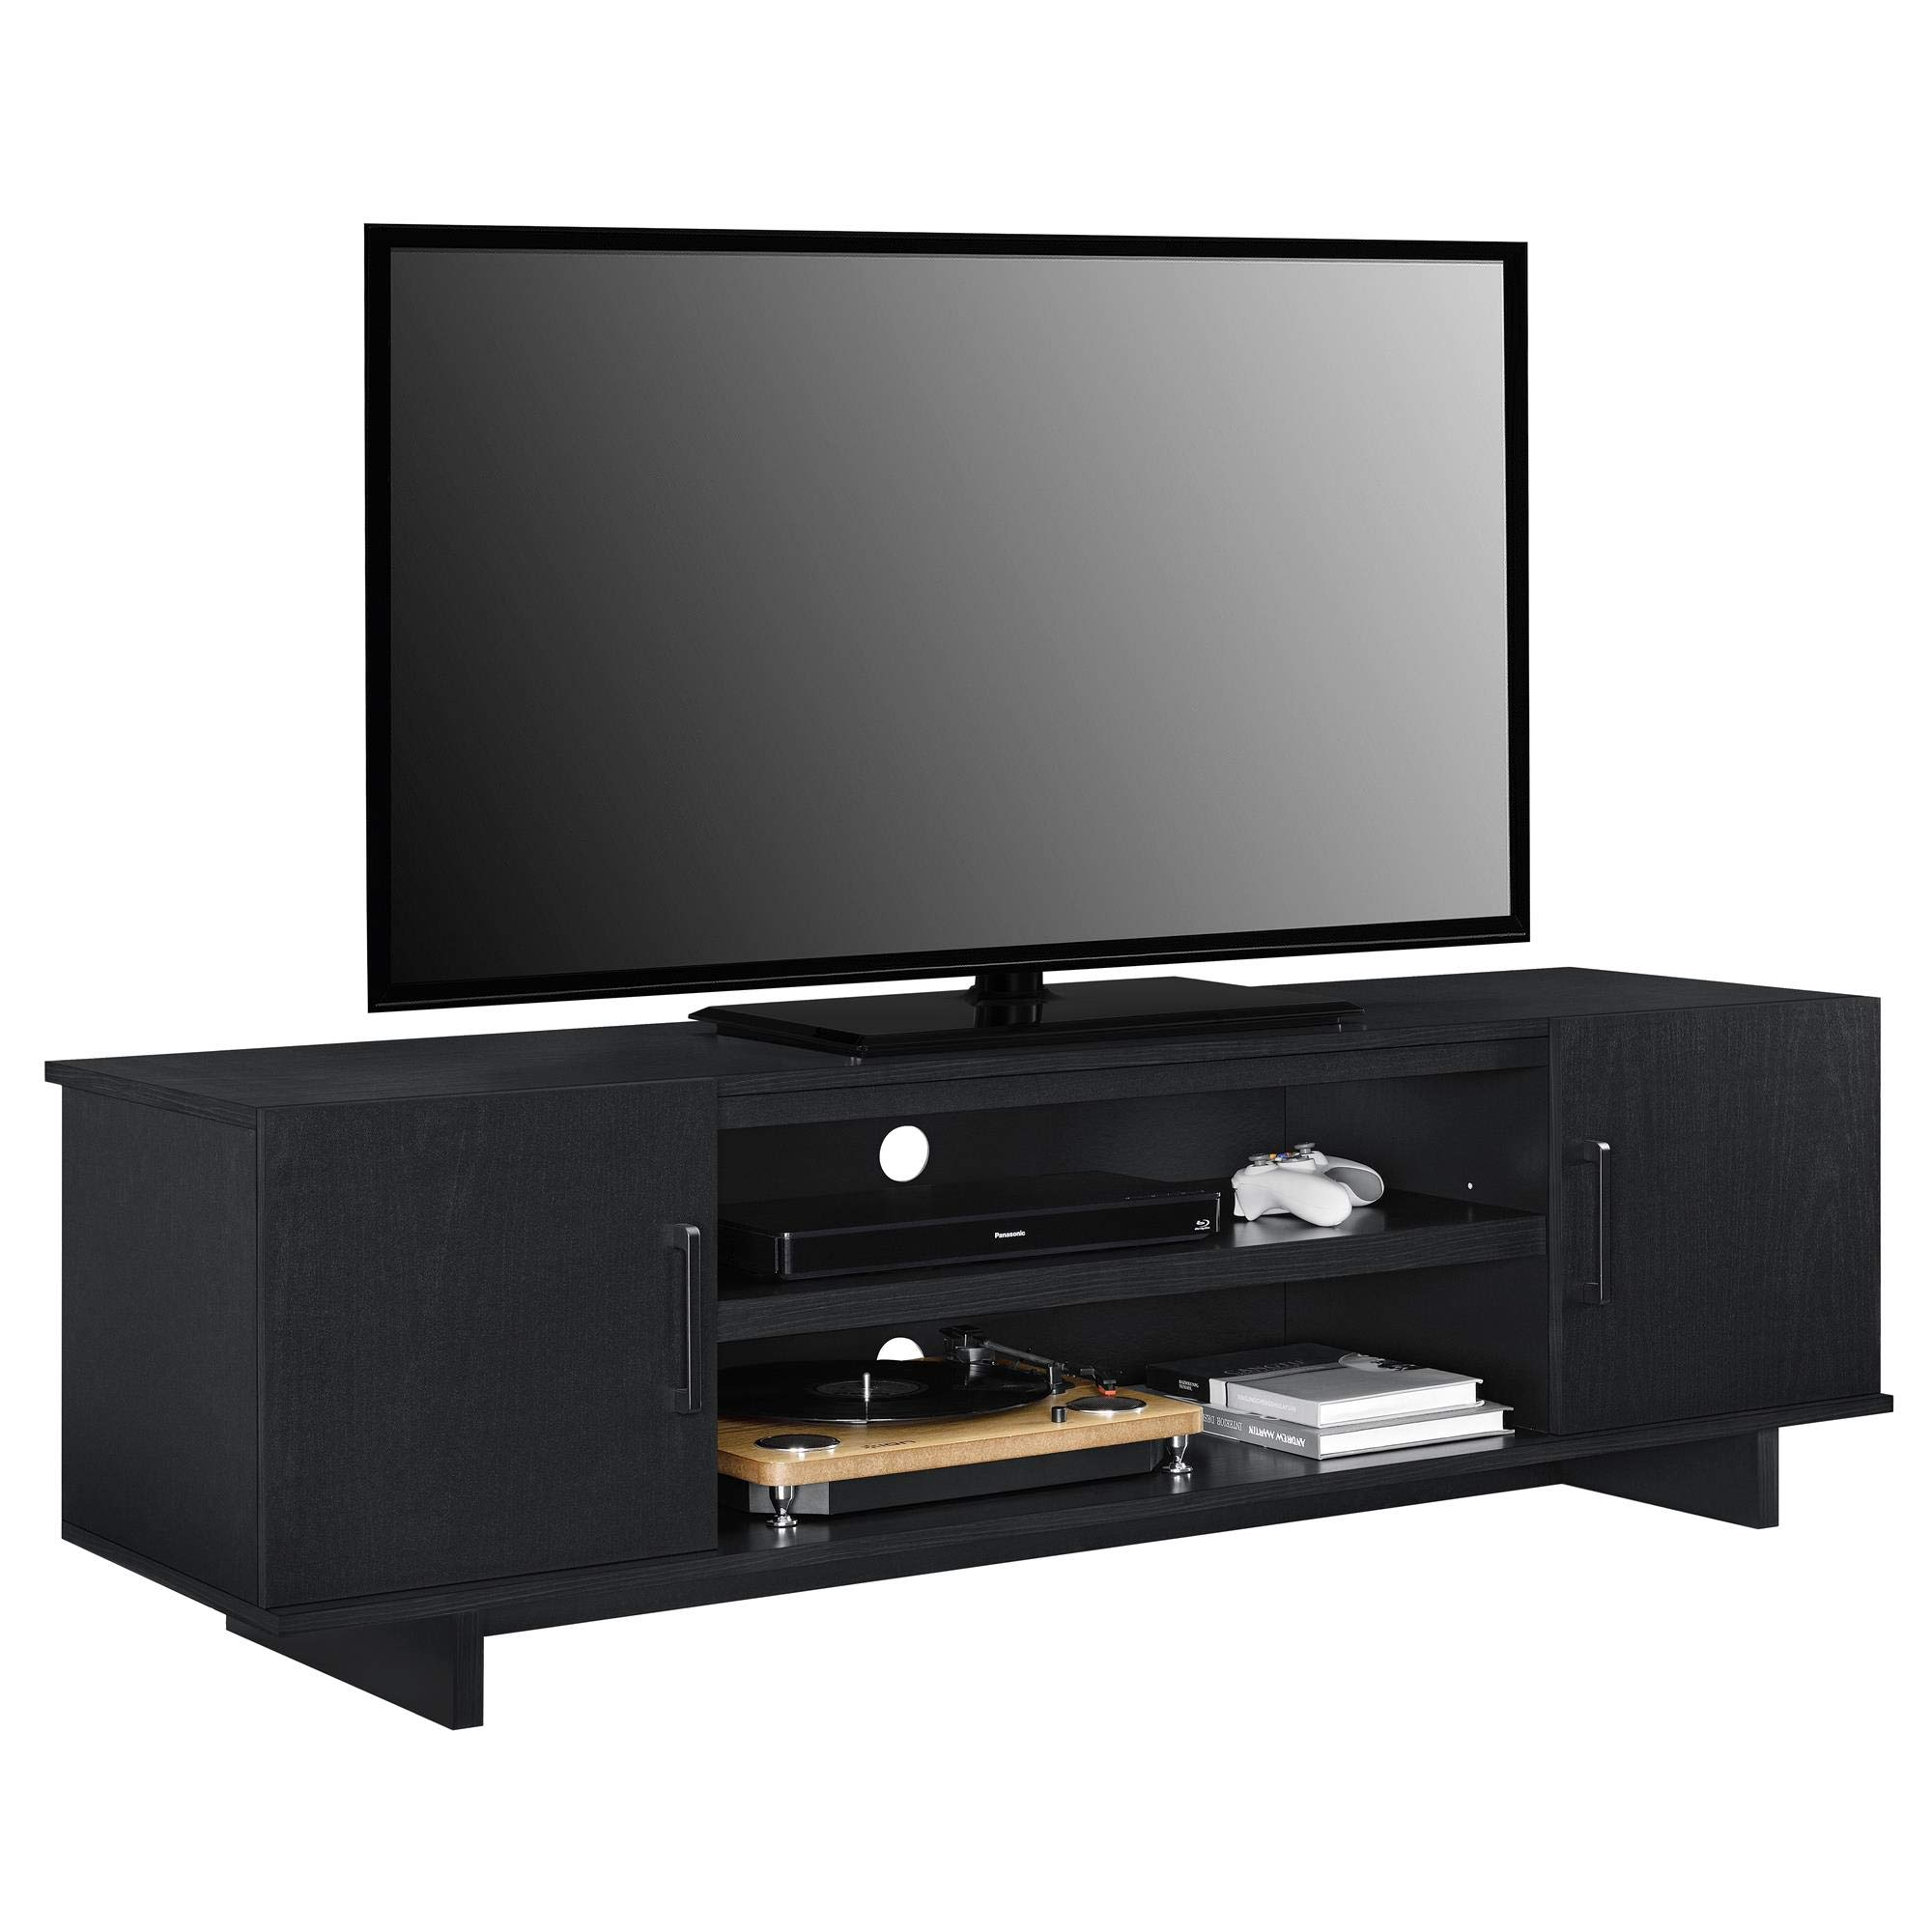 Ameriwood Home Southlander TV Stand, Black Oak by Ameriwood Home